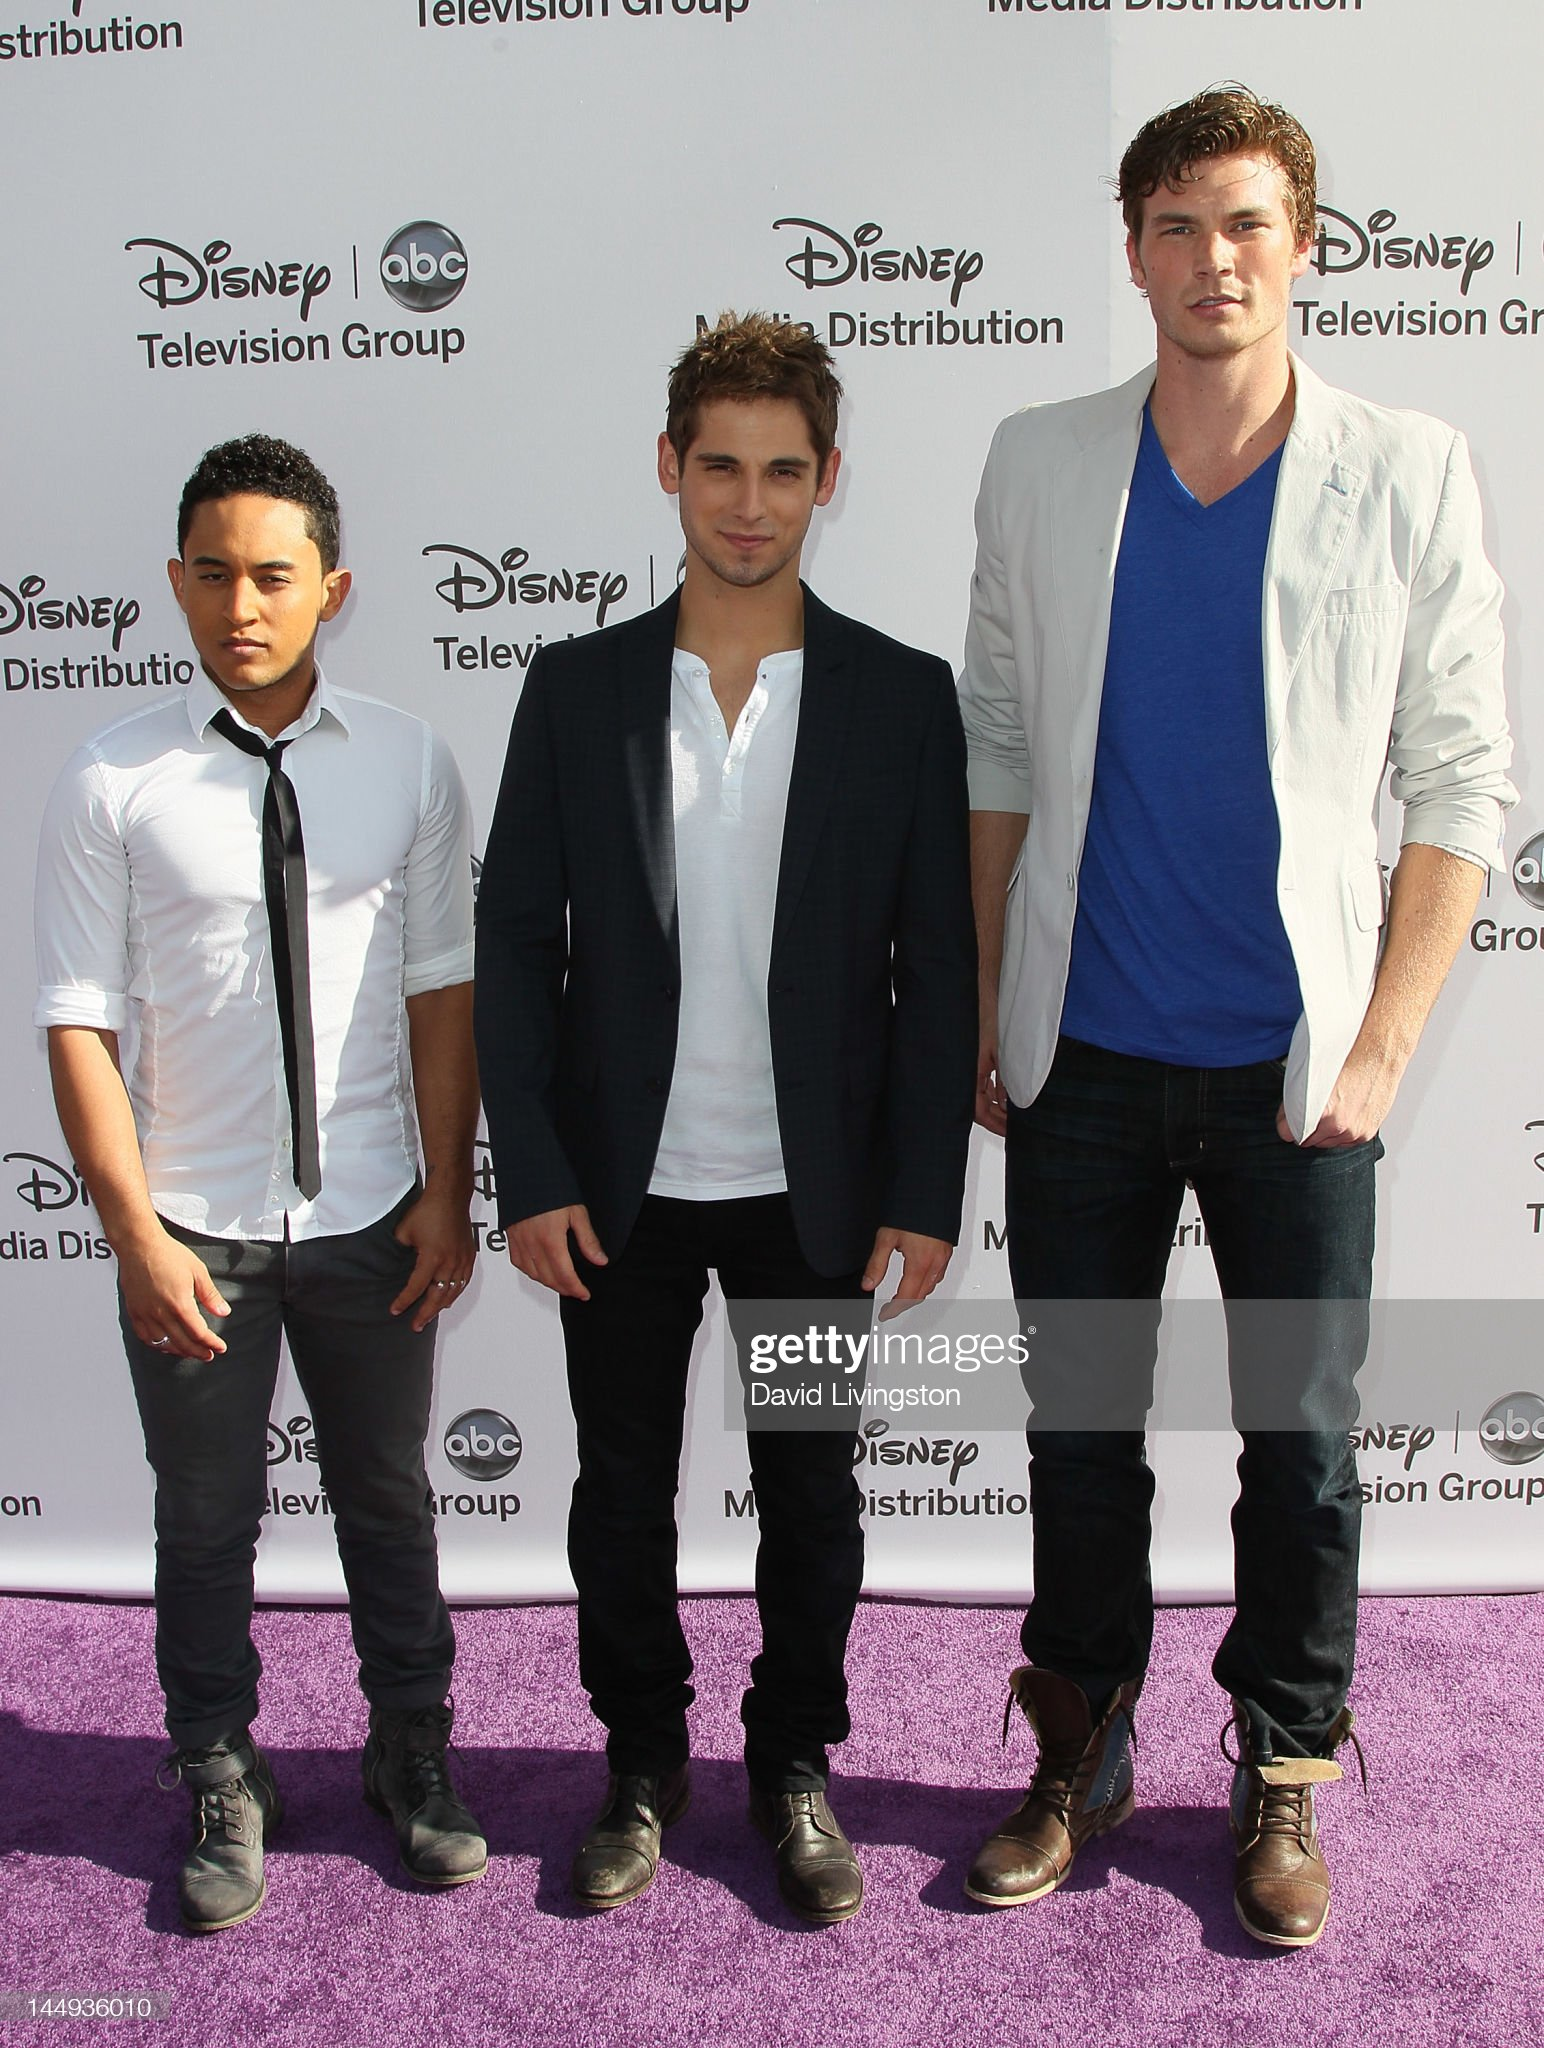 ¿Cuánto mide Tahj Mowry? - Altura - Real height Actors-tahj-mowry-jeanluc-bilodeau-and-derek-theler-attend-disney-picture-id144936010?s=2048x2048